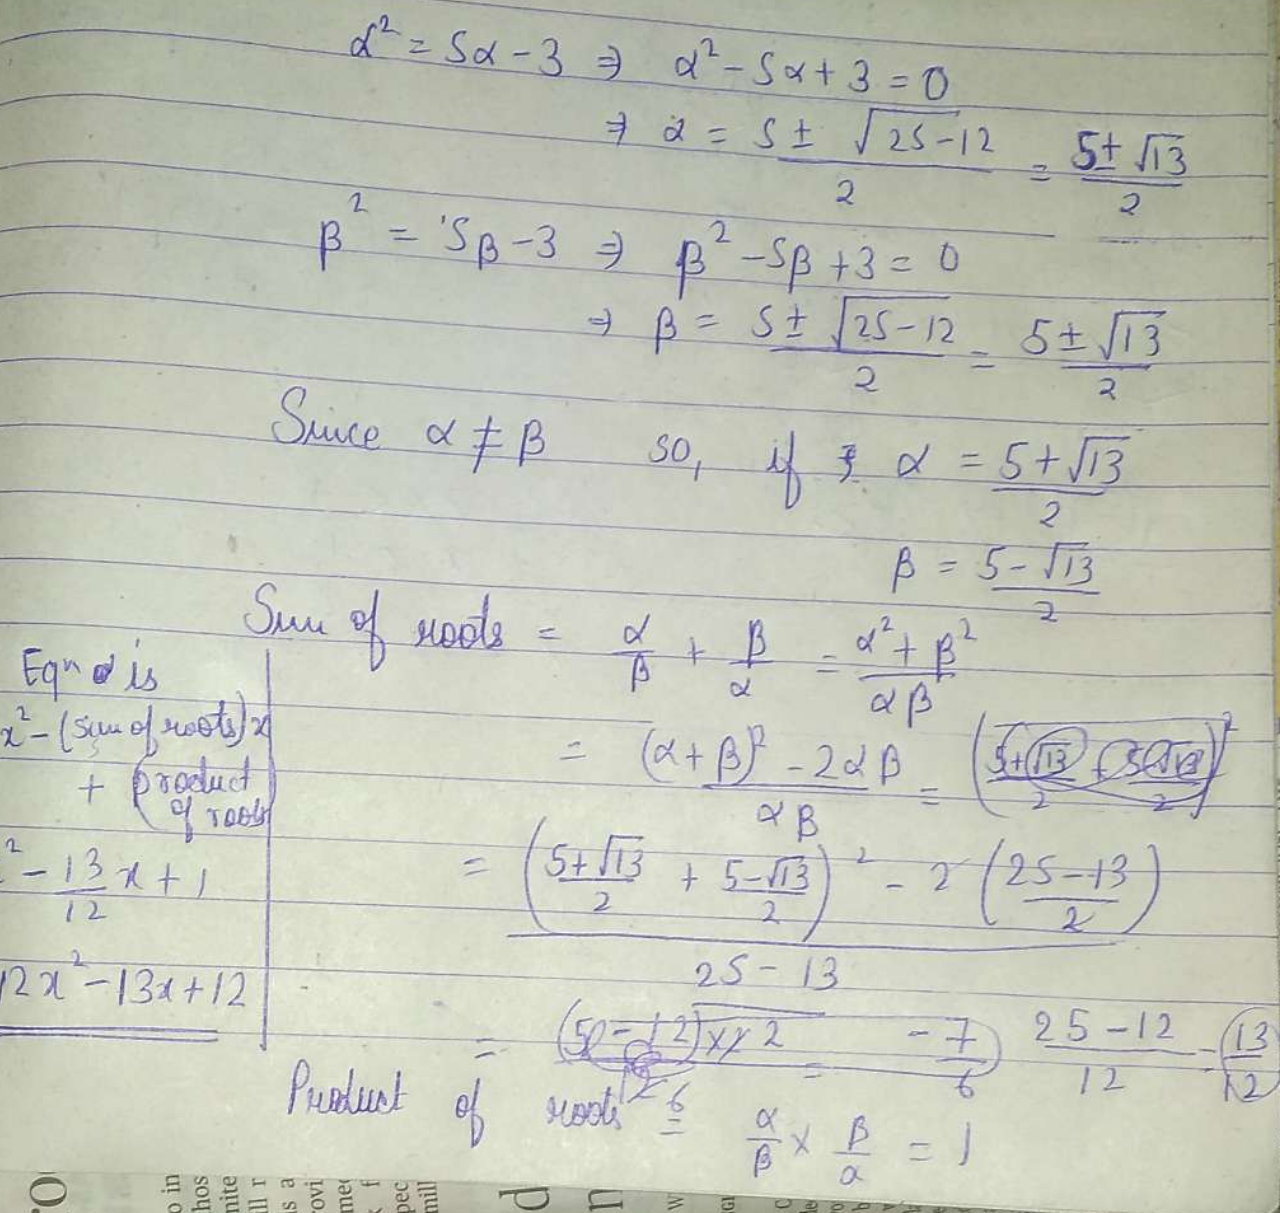 If α ≠β but α²=5α-3, β²=5β-3, then find the equation whose roots are α/β and β/α